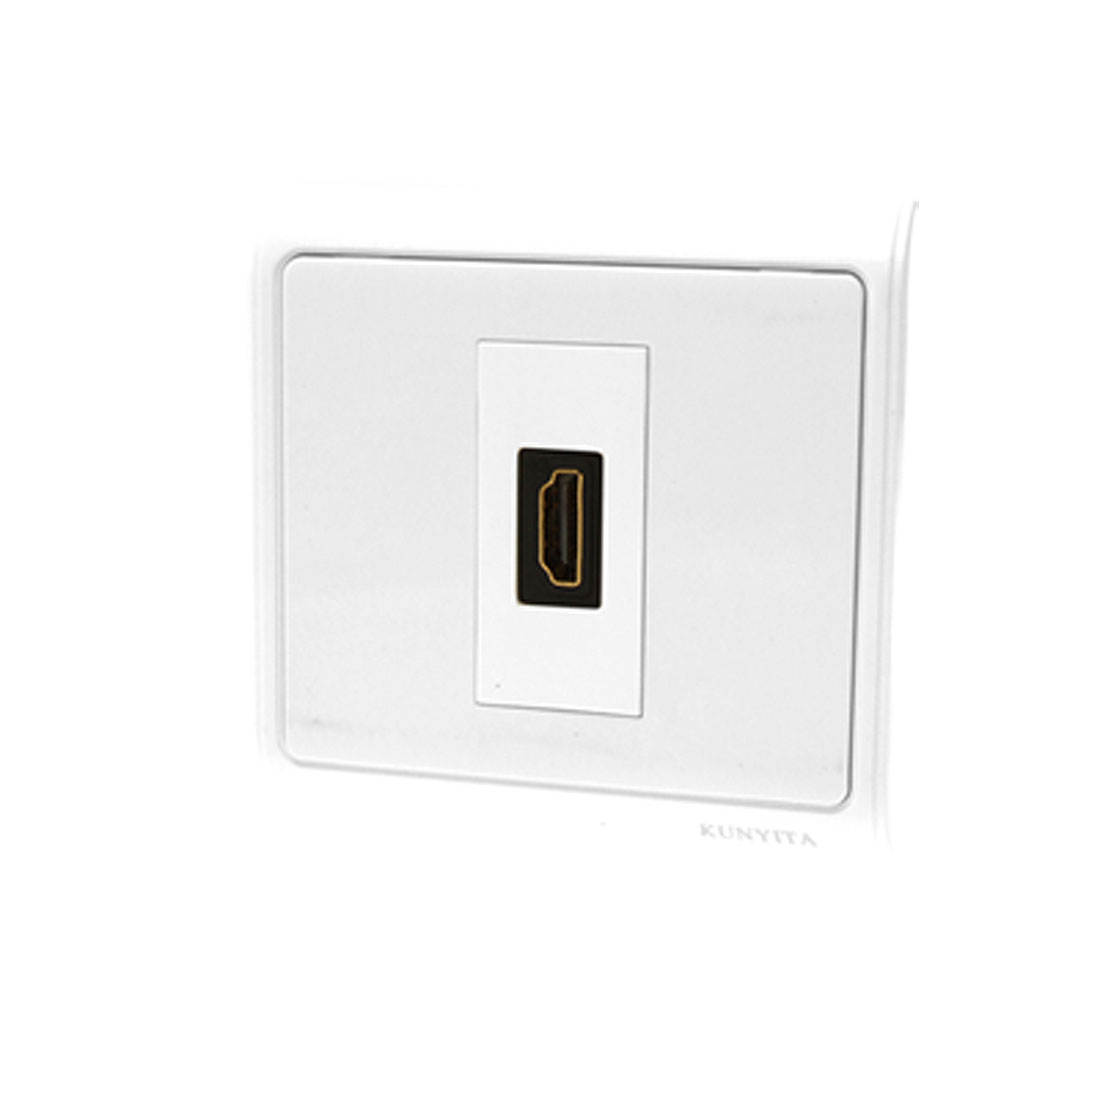 HDMI Wall Plate Panel Cover with Single Port Outlet